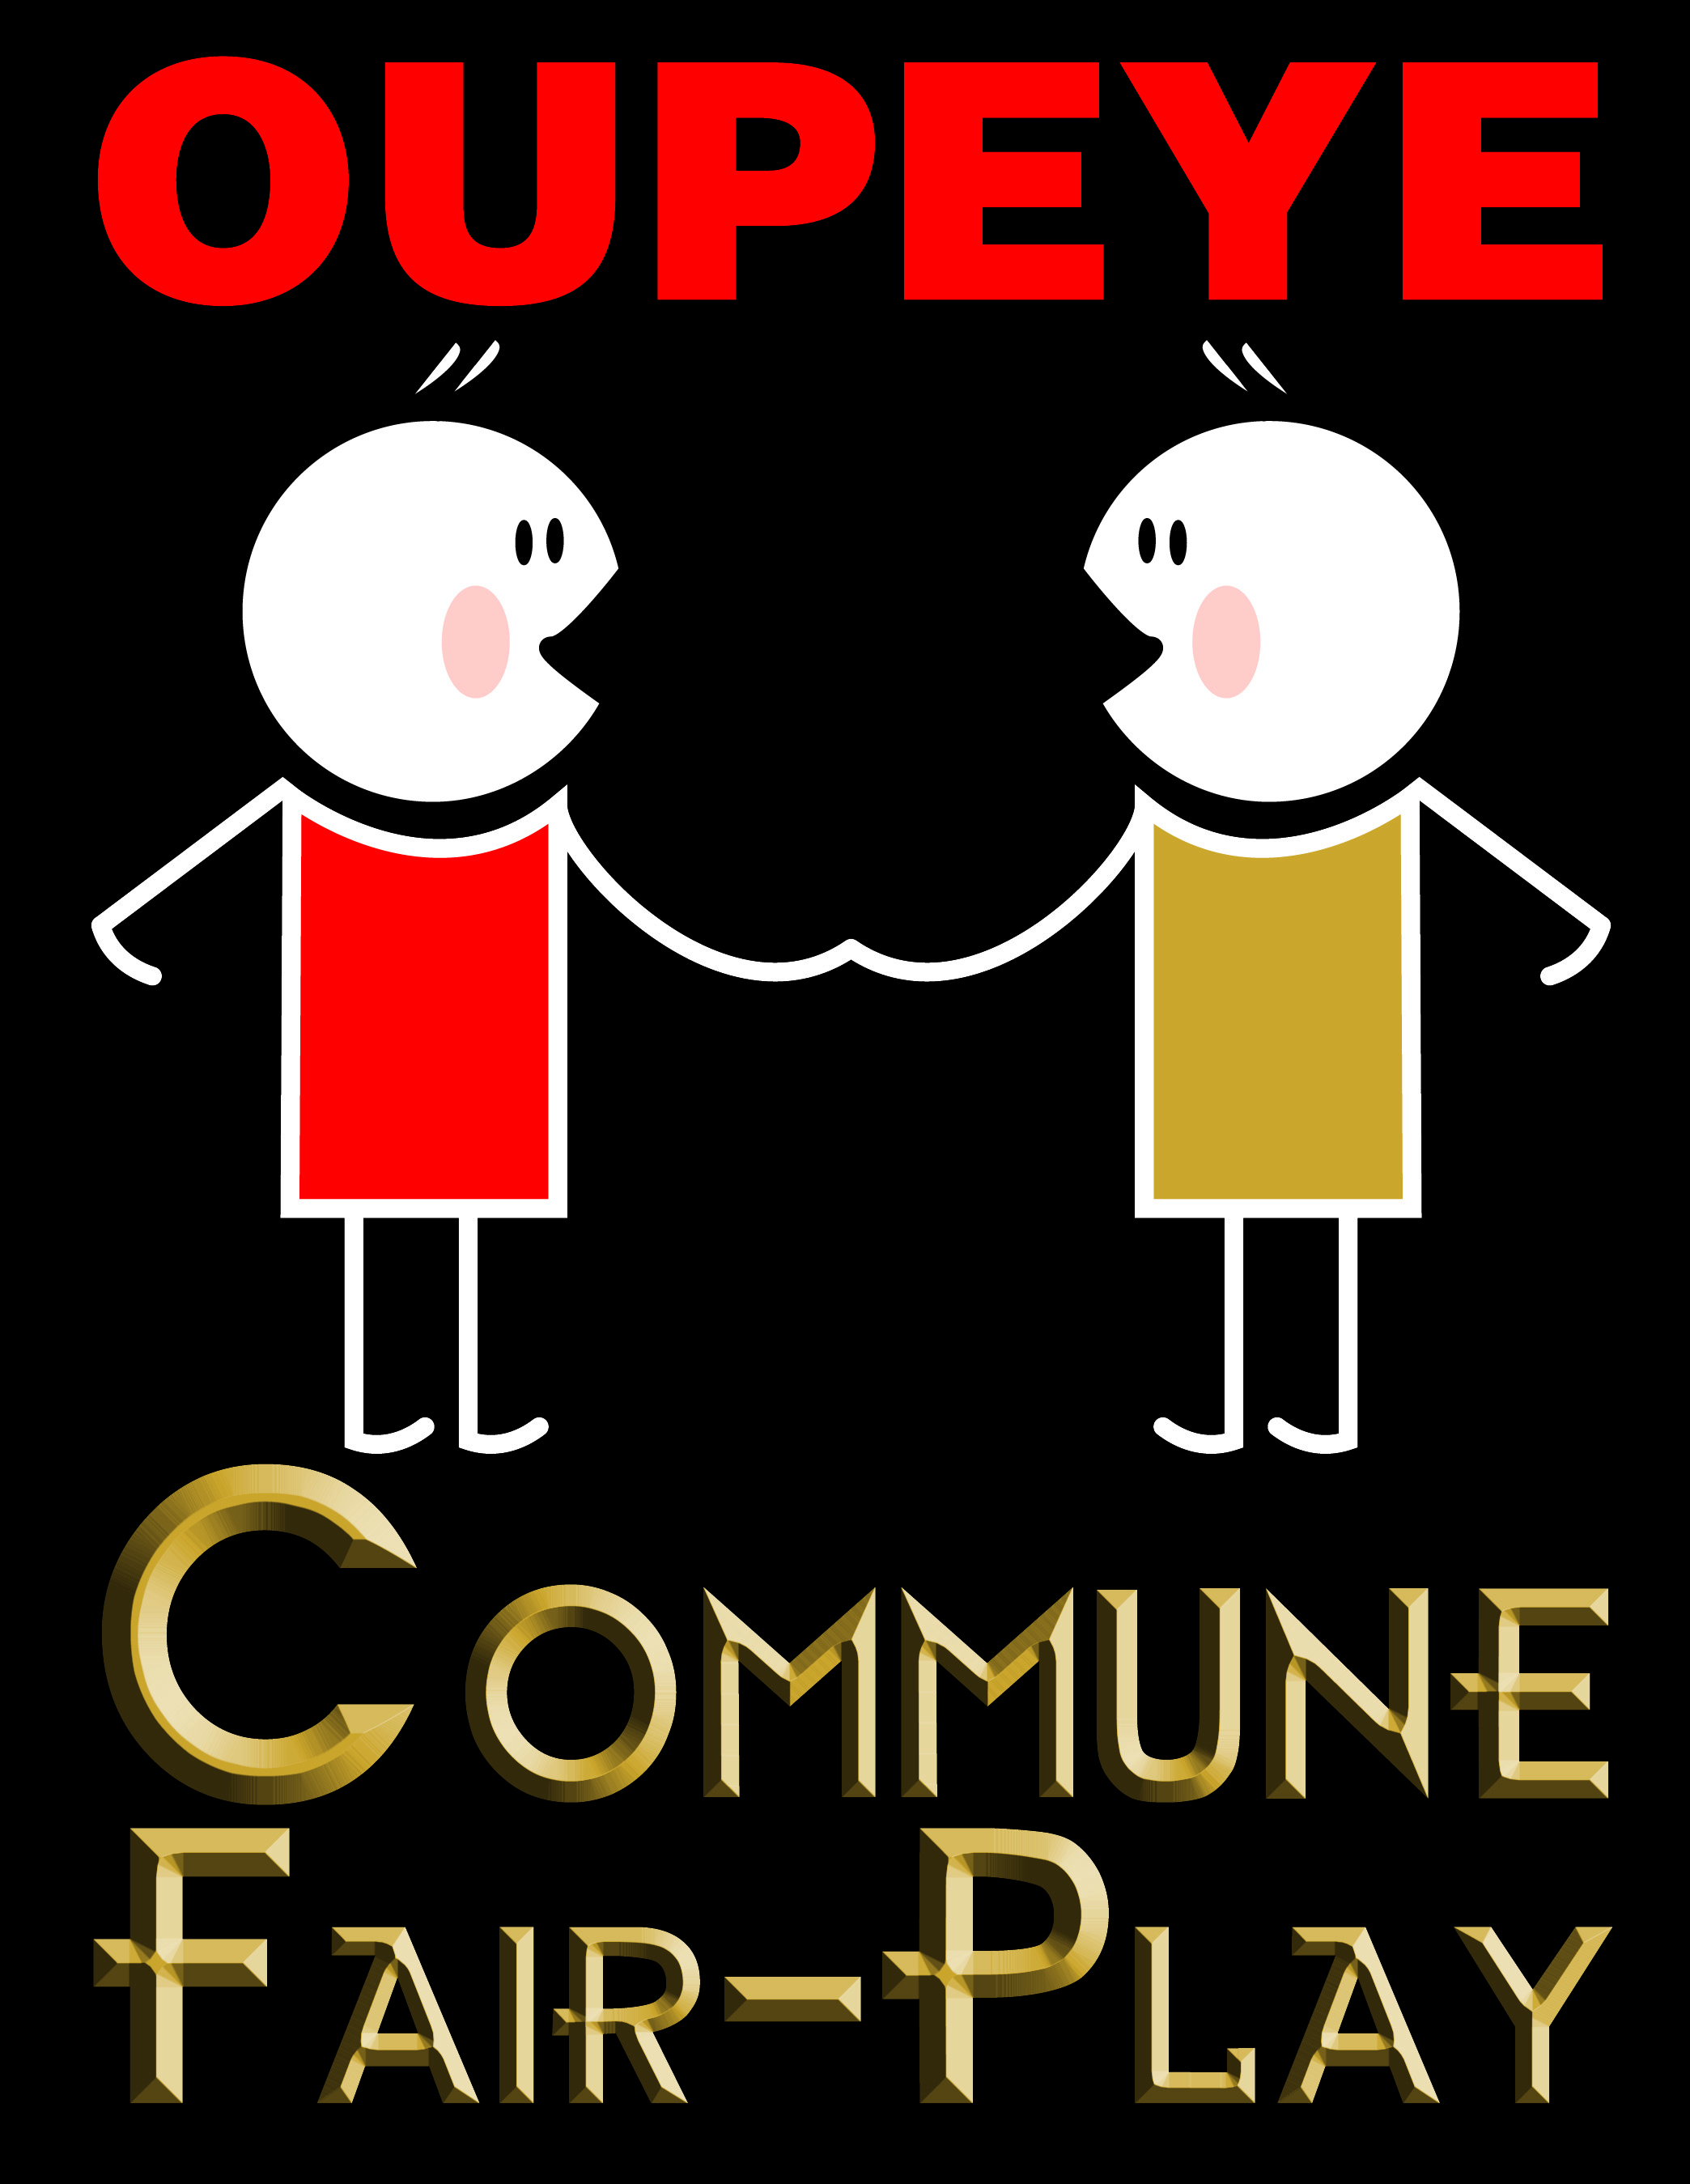 commune fair play